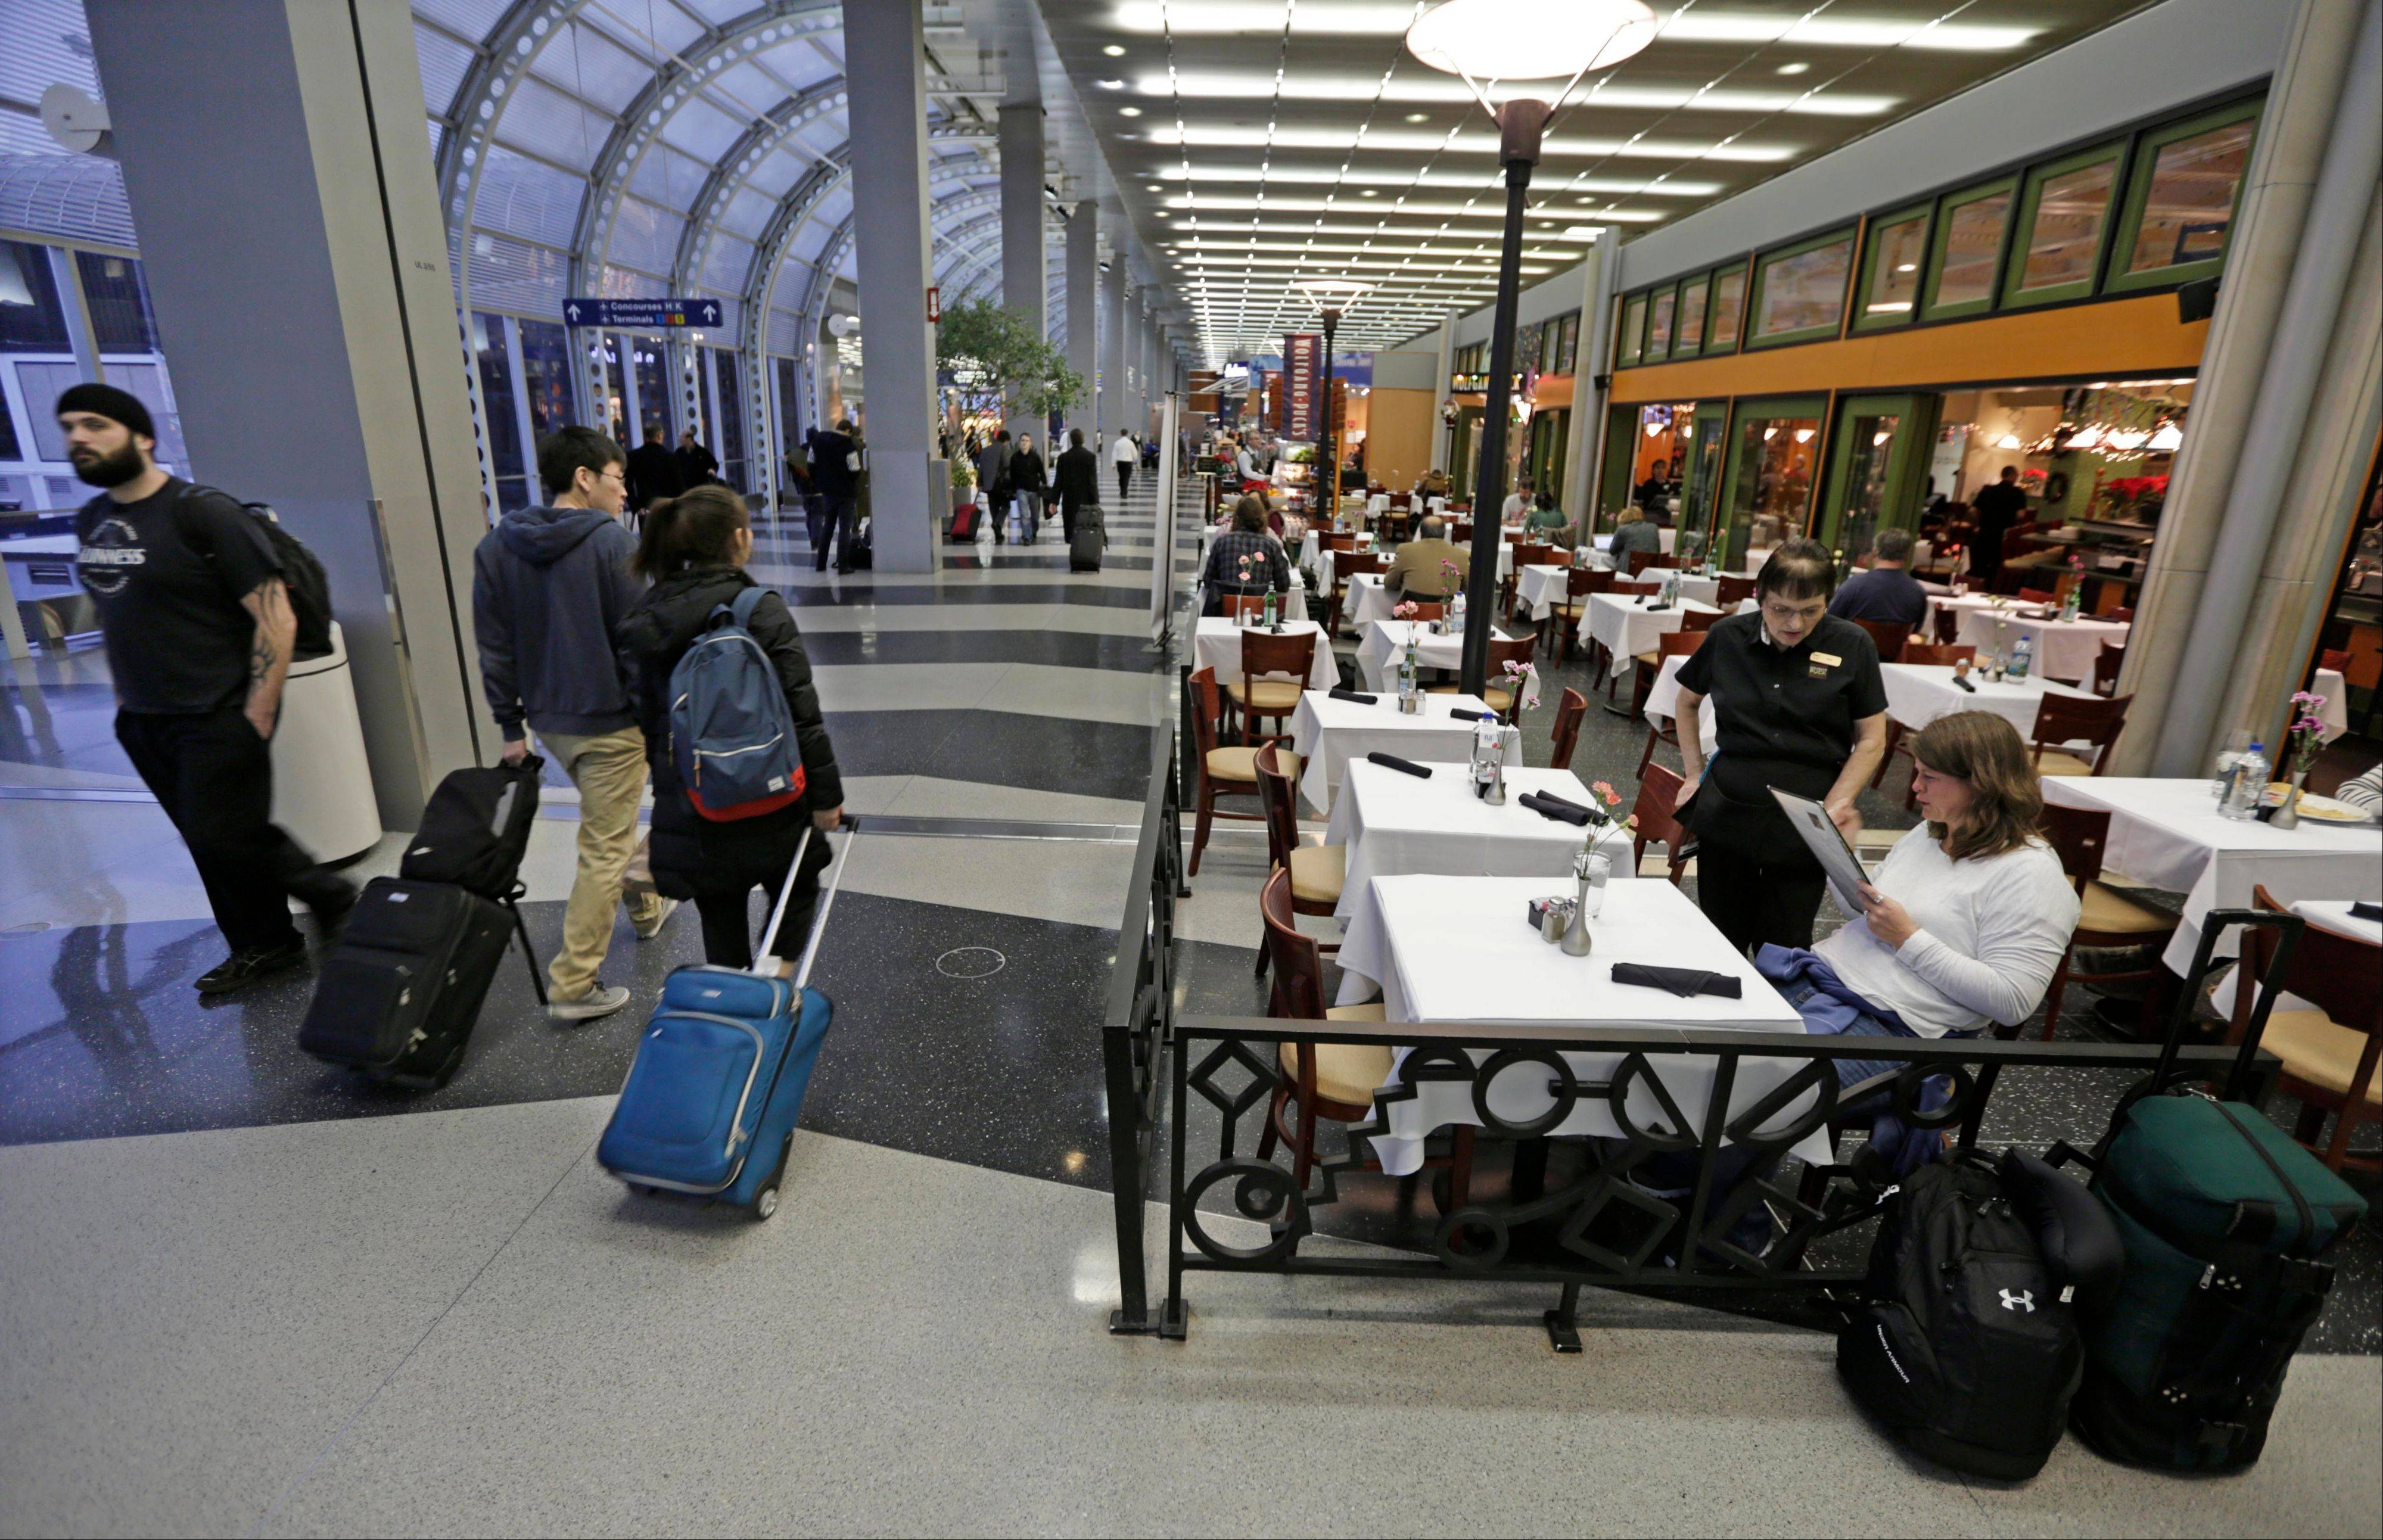 In this photo taken Tuesday, Dec. 18, 2012, at O'Hare International Airport in Chicago, a diner at Wolfgang Puck Cafe sits in a sidewalk cafe setting in Terminal 3.